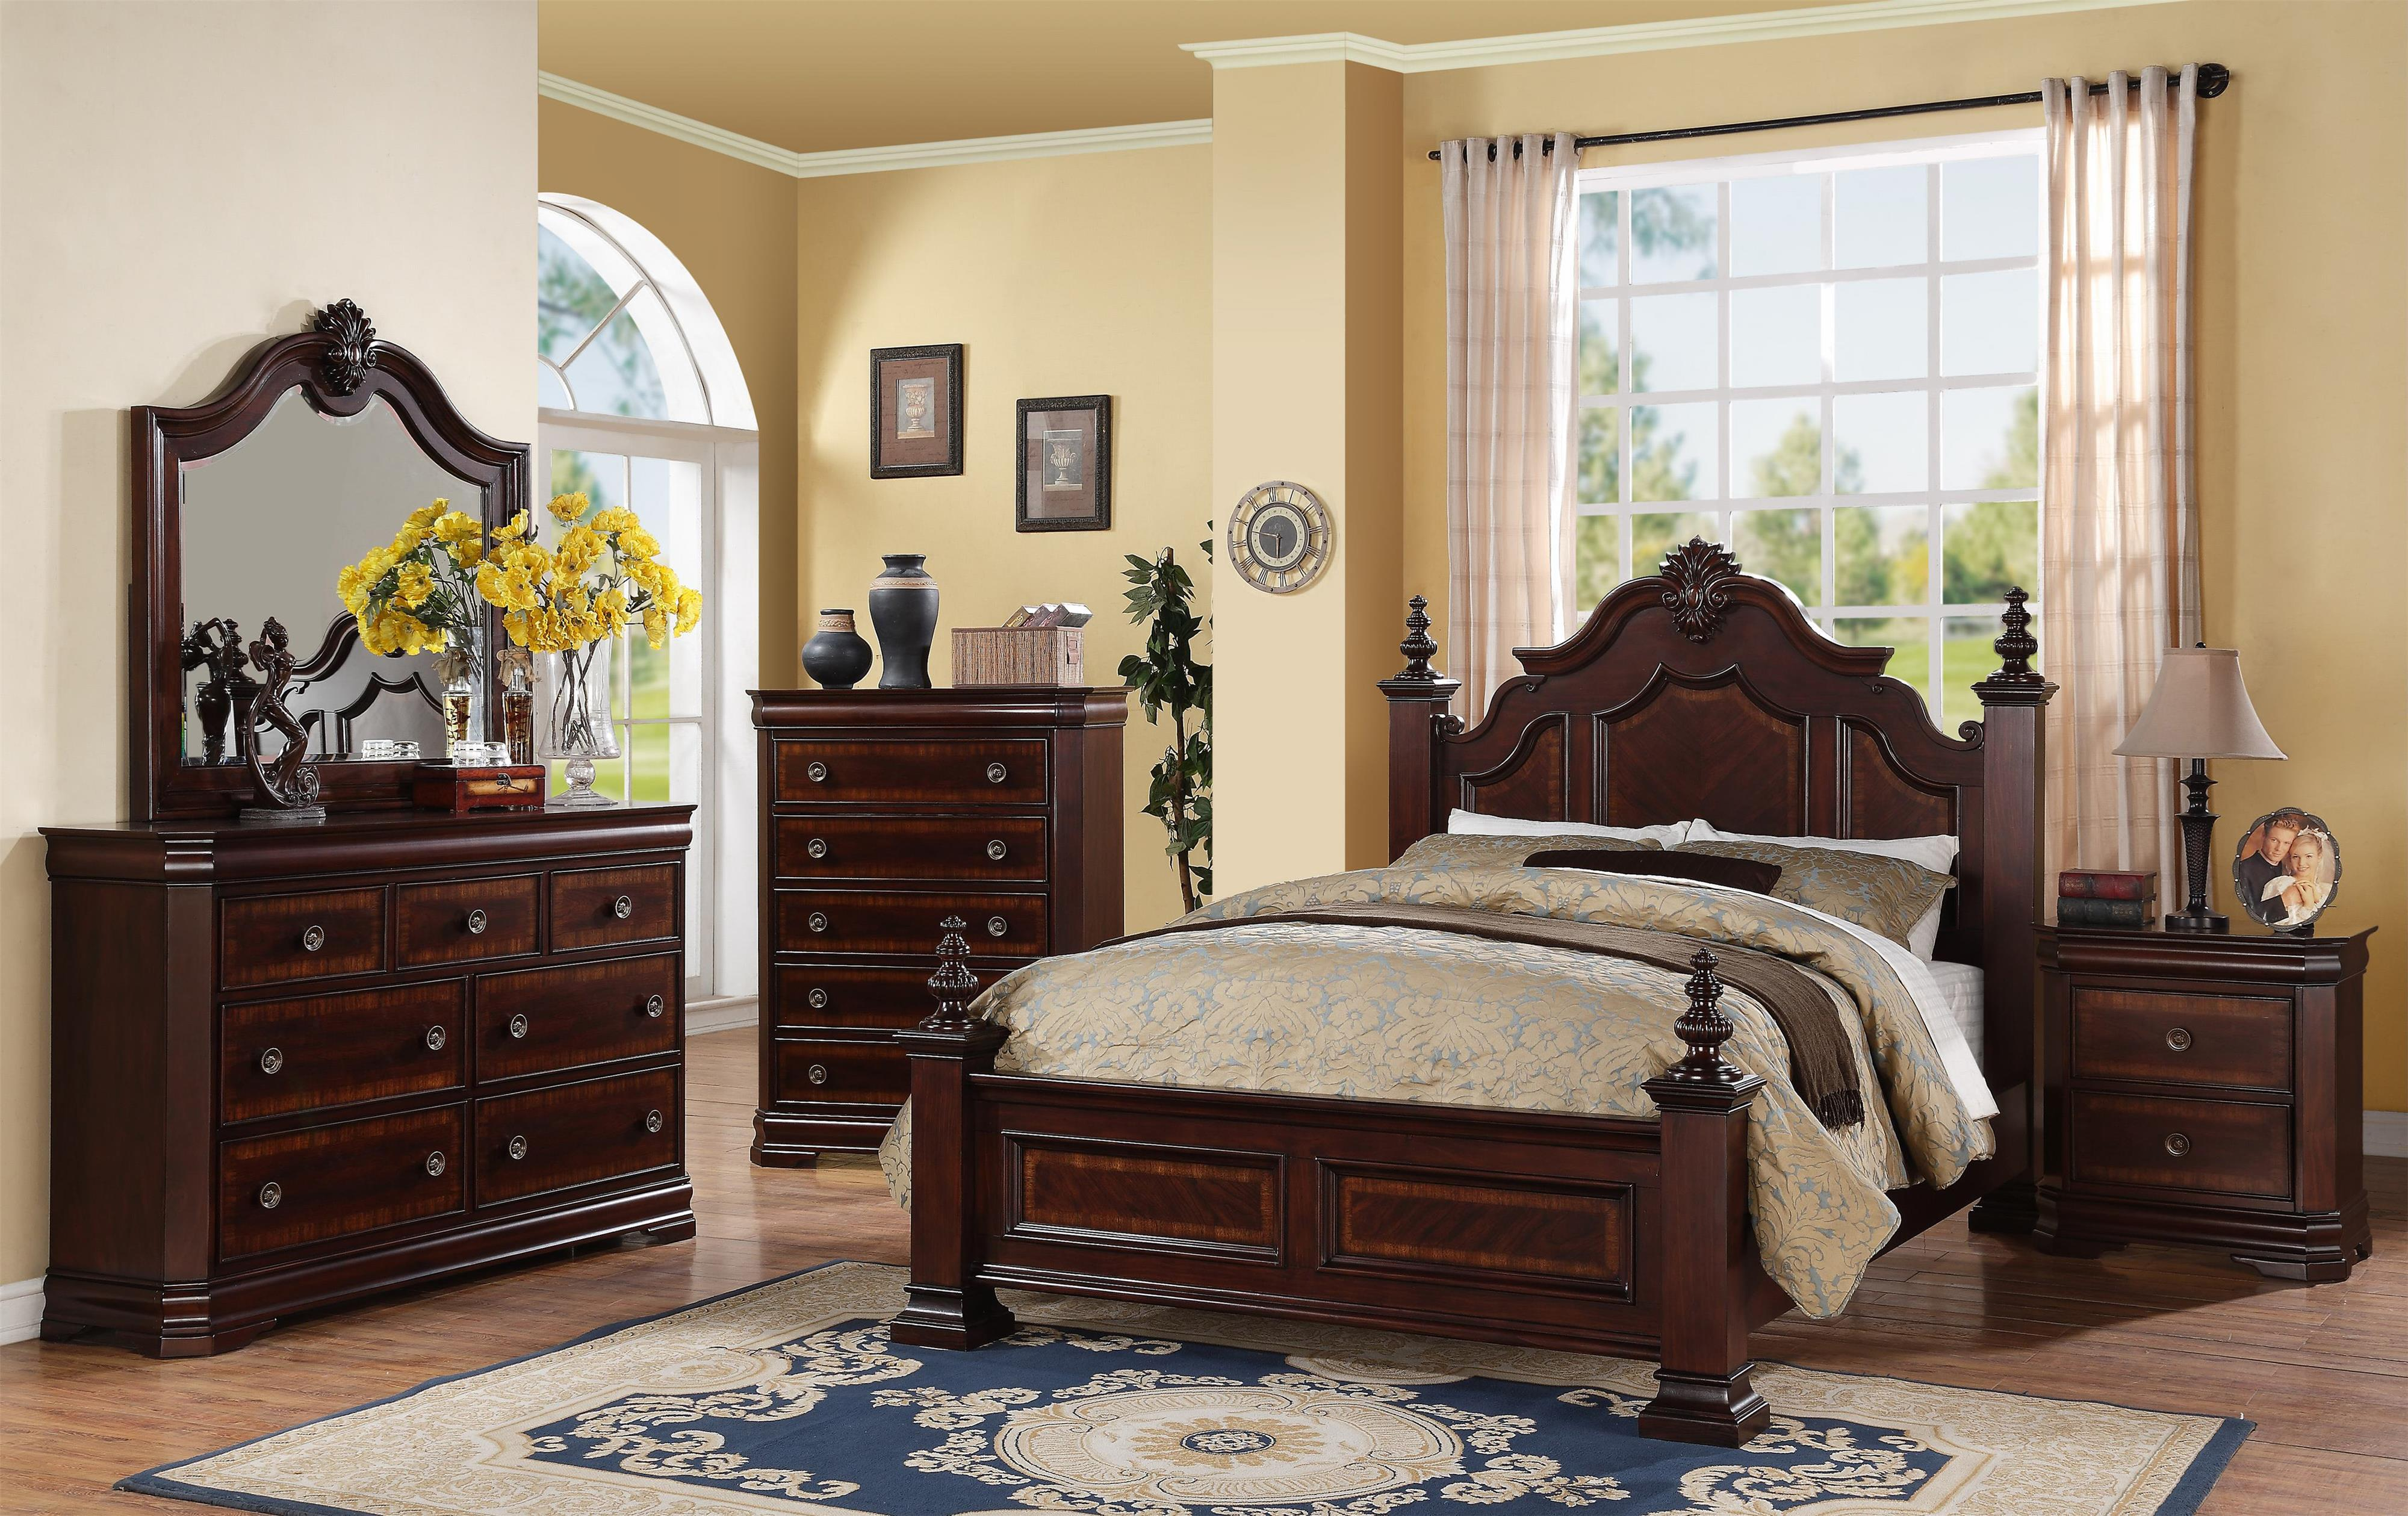 Charlotte Queen Bedroom Group by Crown Mark at Northeast Factory Direct